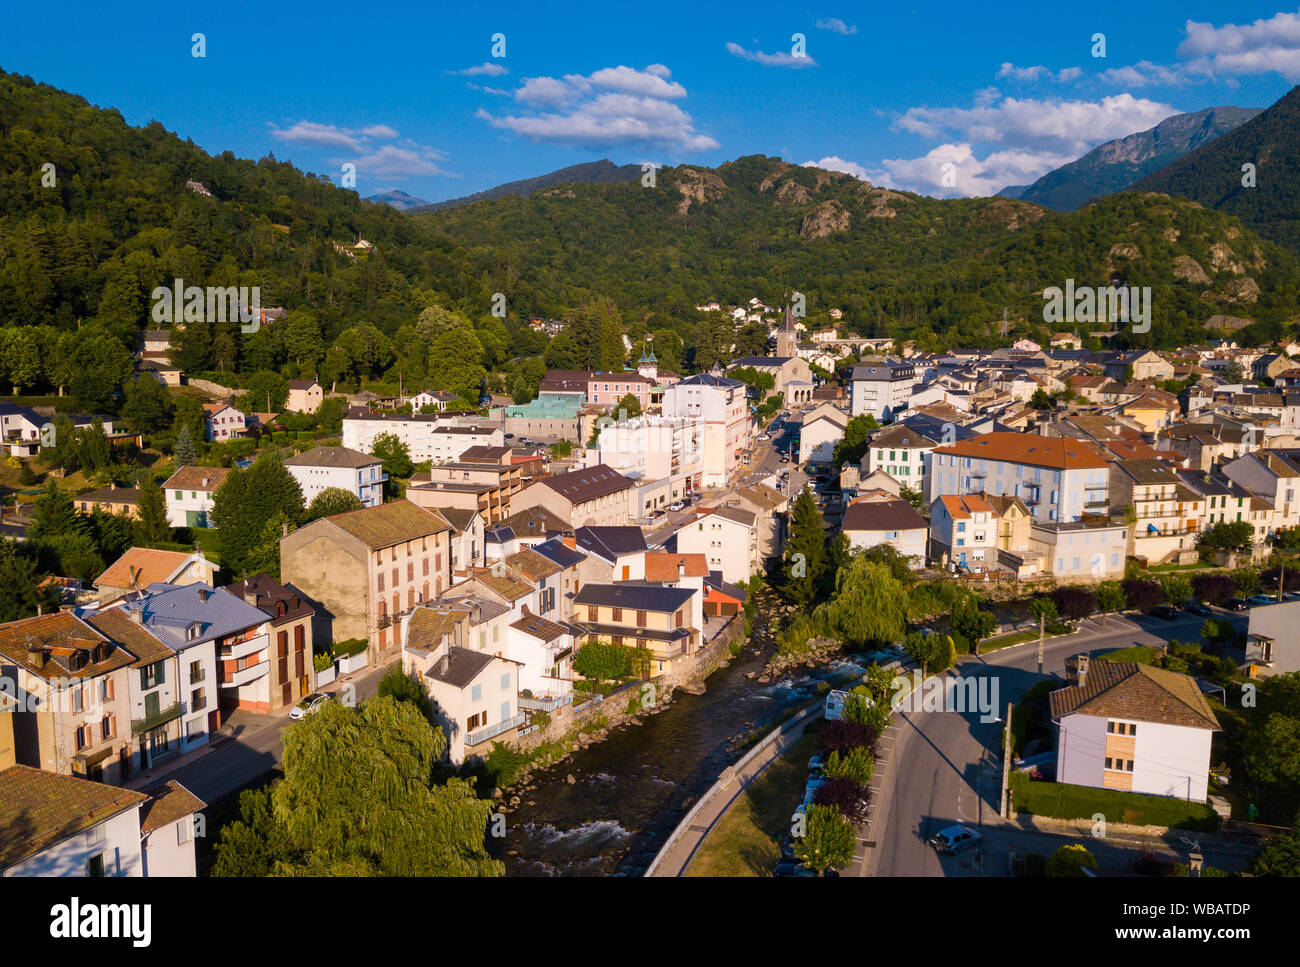 Aerial view of Ax-les-Thermes with buildings and The Lauze river in  France, Midi-Pyrenees Stock Photo